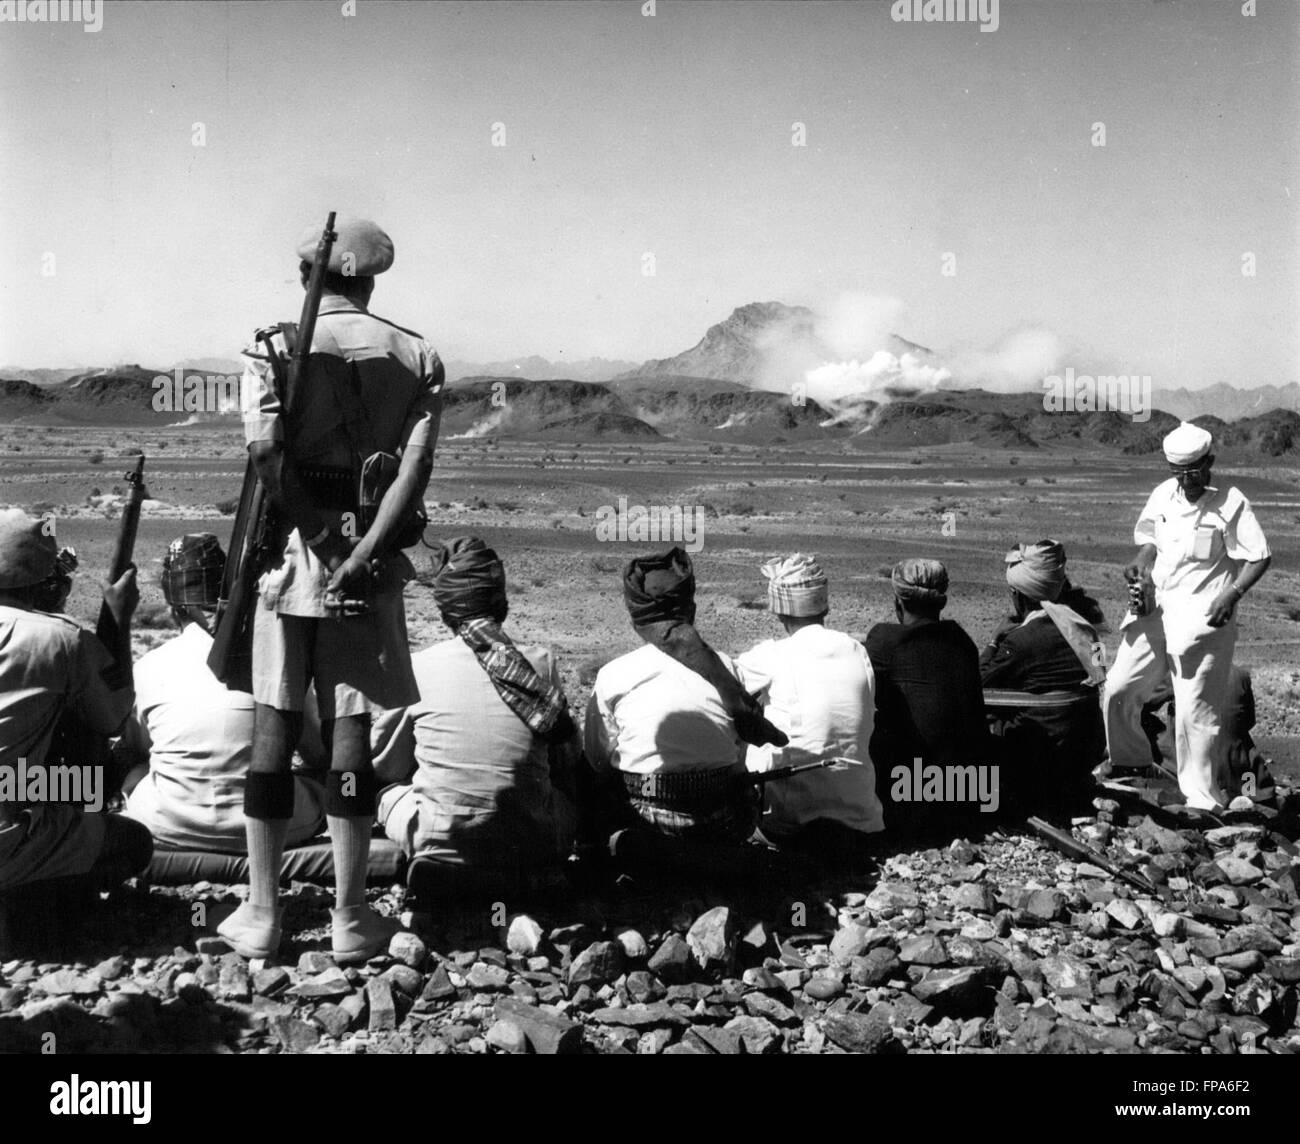 1962 - Yemen -Aden border : Sultans and Headmen watch the Aden Frontier hills as they are pounded by Mortar and - Stock Image